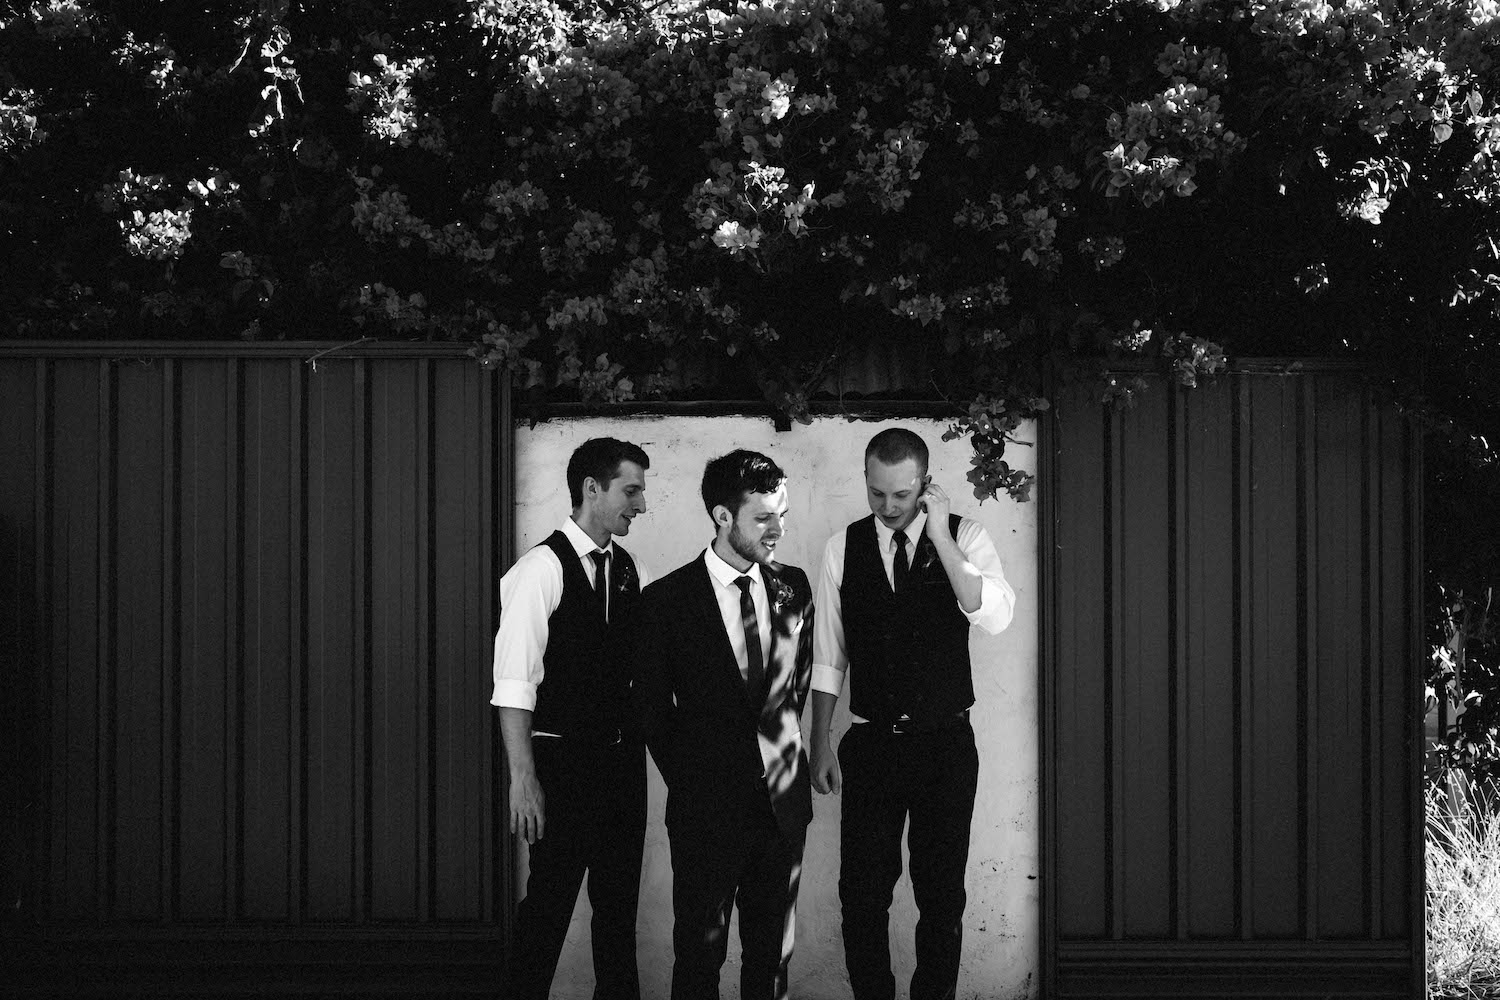 A black & white portrait of the groomsmen at a Subiaco Wedding, taken by Rhianna May Destination Wedding Photographer